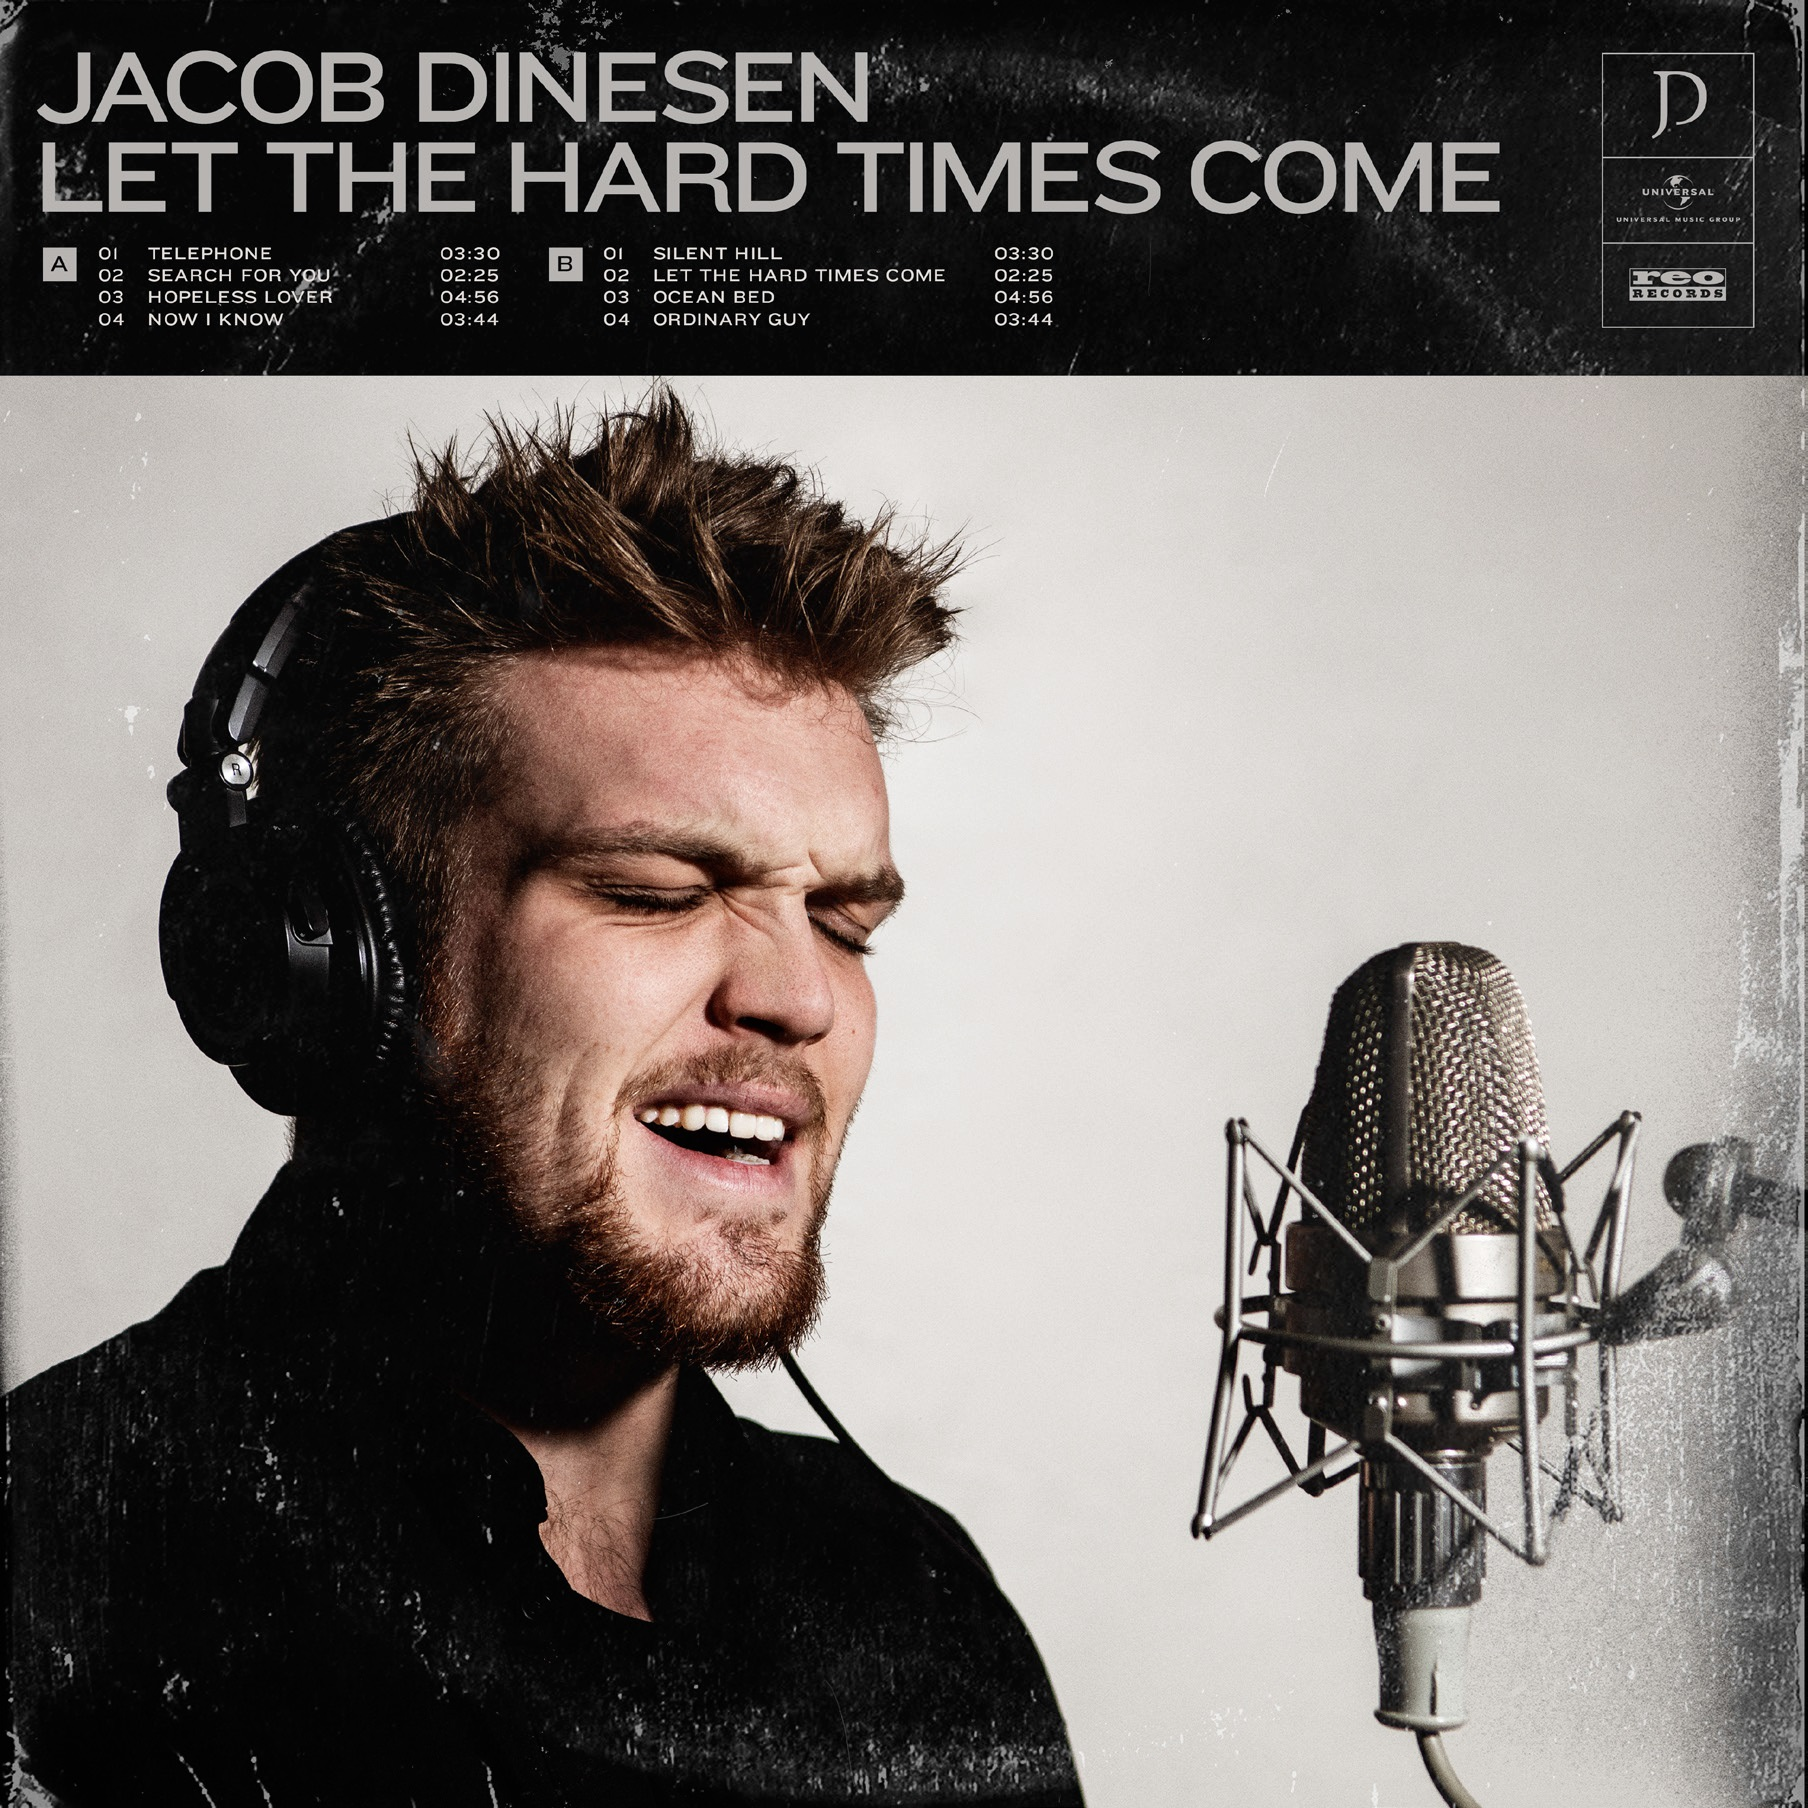 Let The Hard Times Come - Jacob Dinesen - Musik -  - 5056022662455 - 25/9-2020